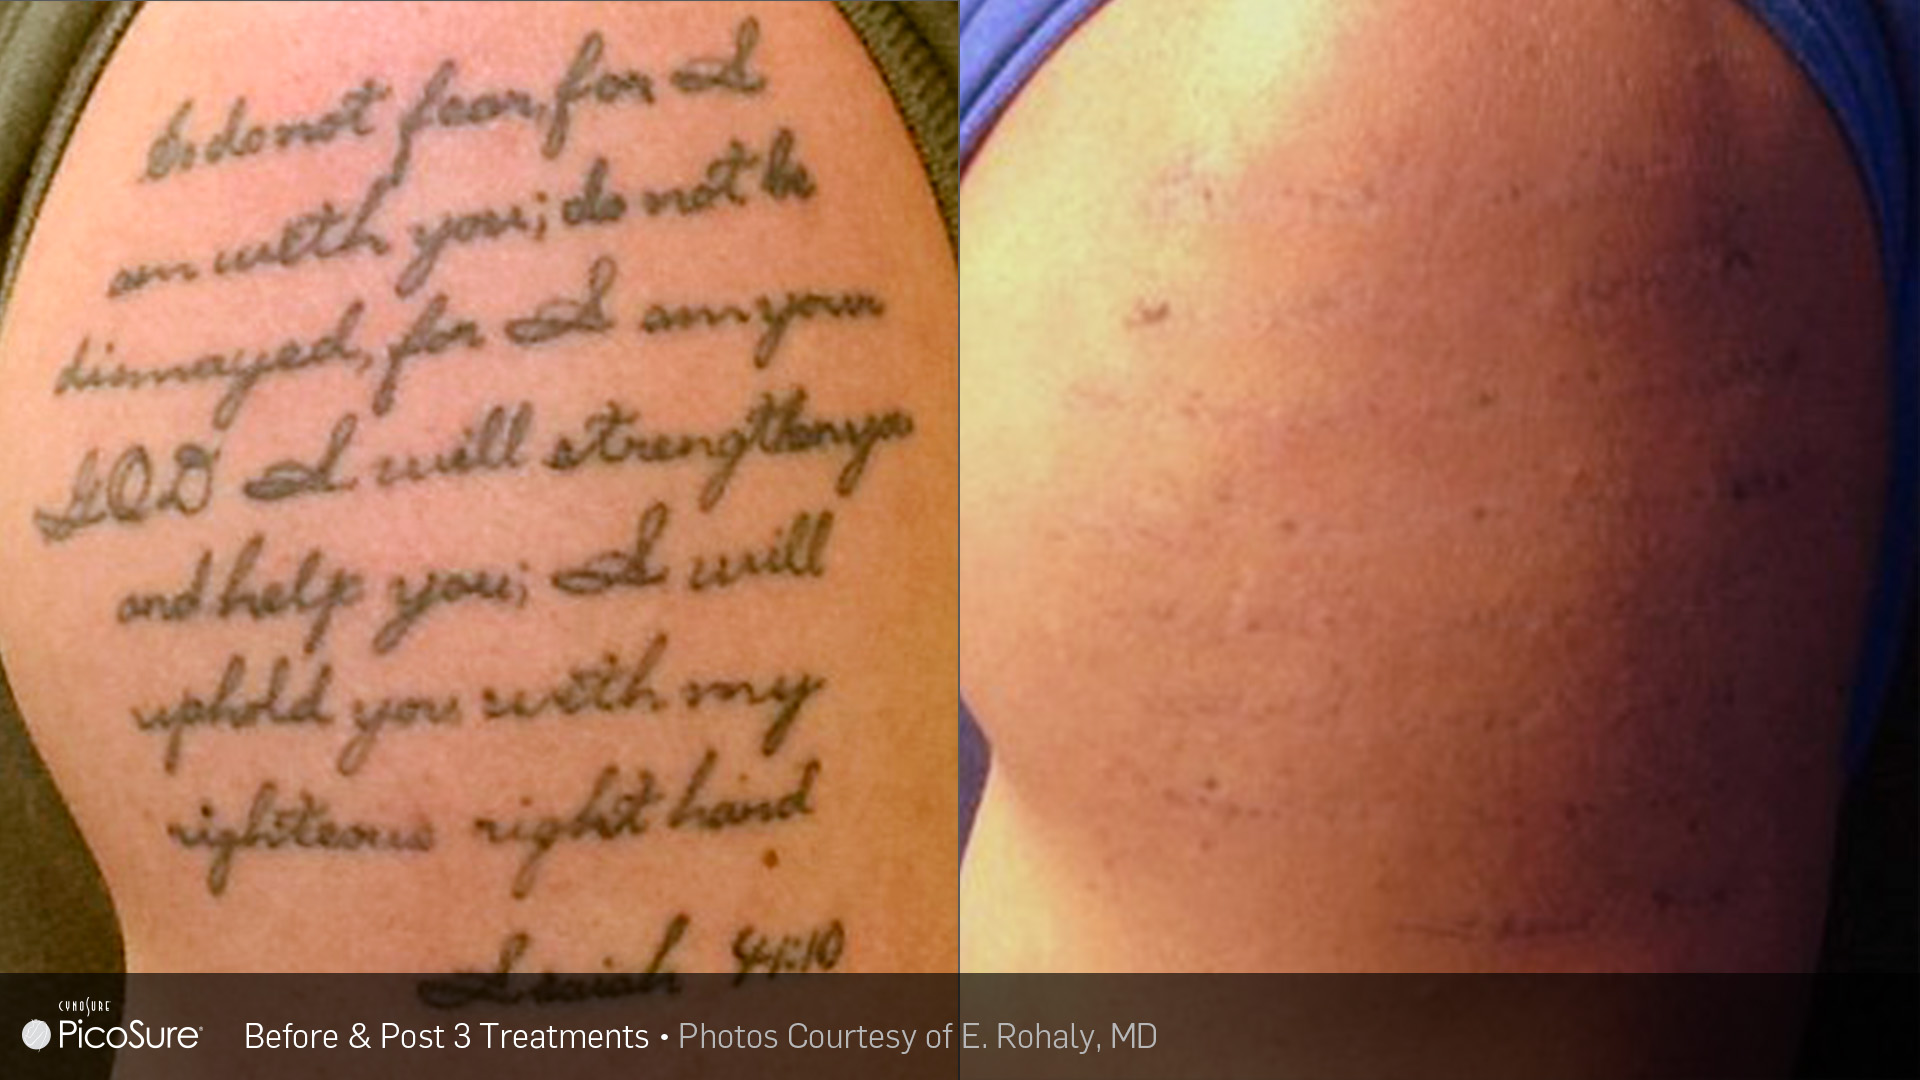 PicoSure Tattoo Removal Before and After